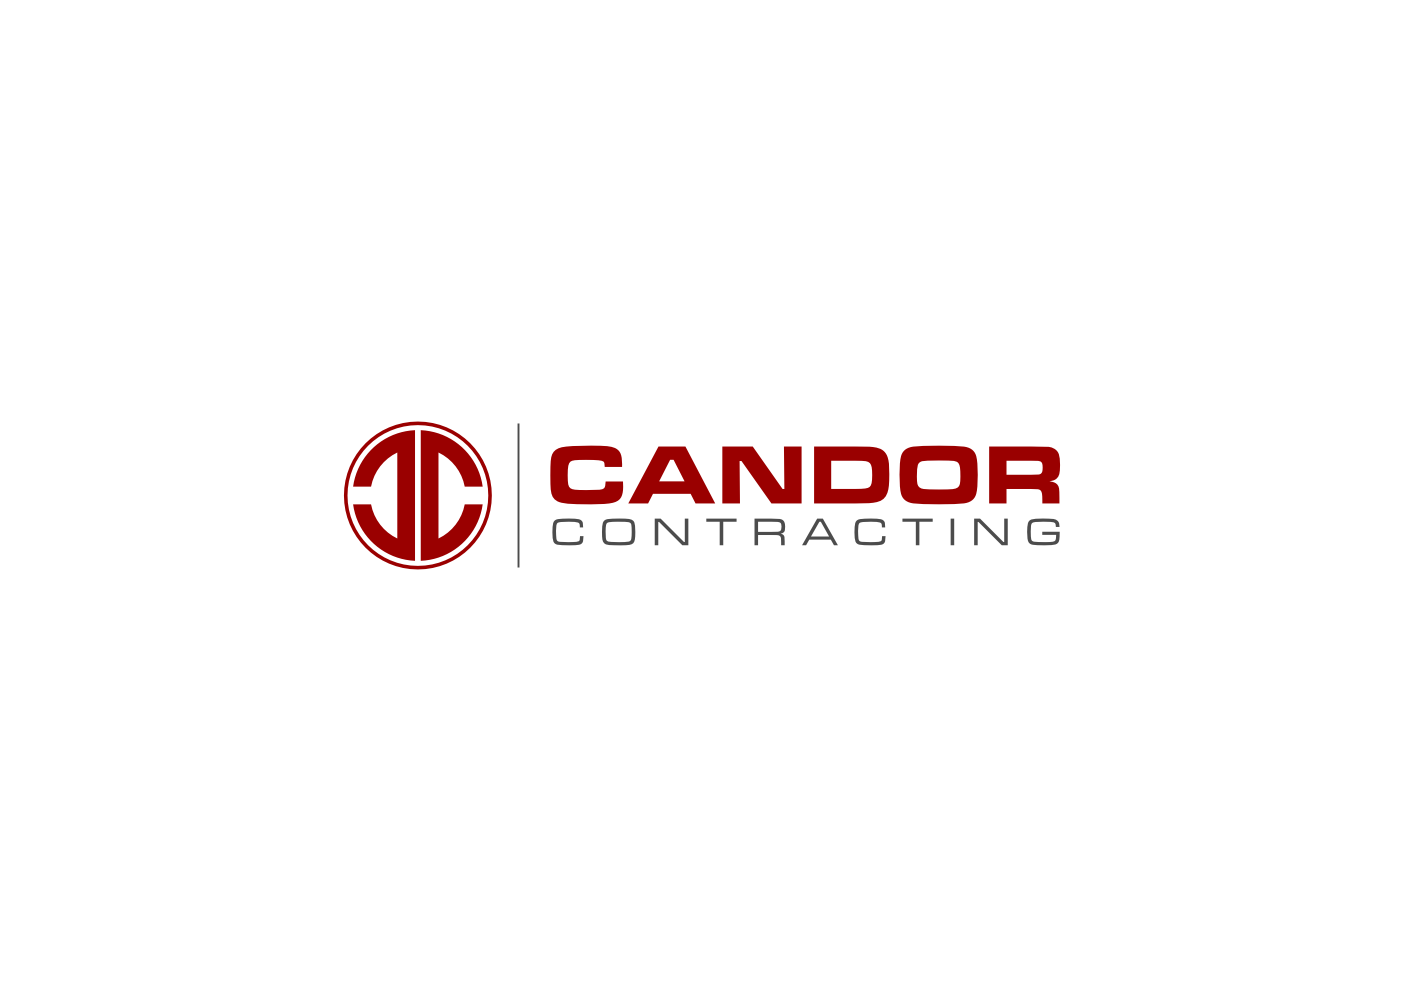 Logo Design by Ekarini Puspitasari - Entry No. 5 in the Logo Design Contest Unique Logo Design Wanted for Candor Contracting.